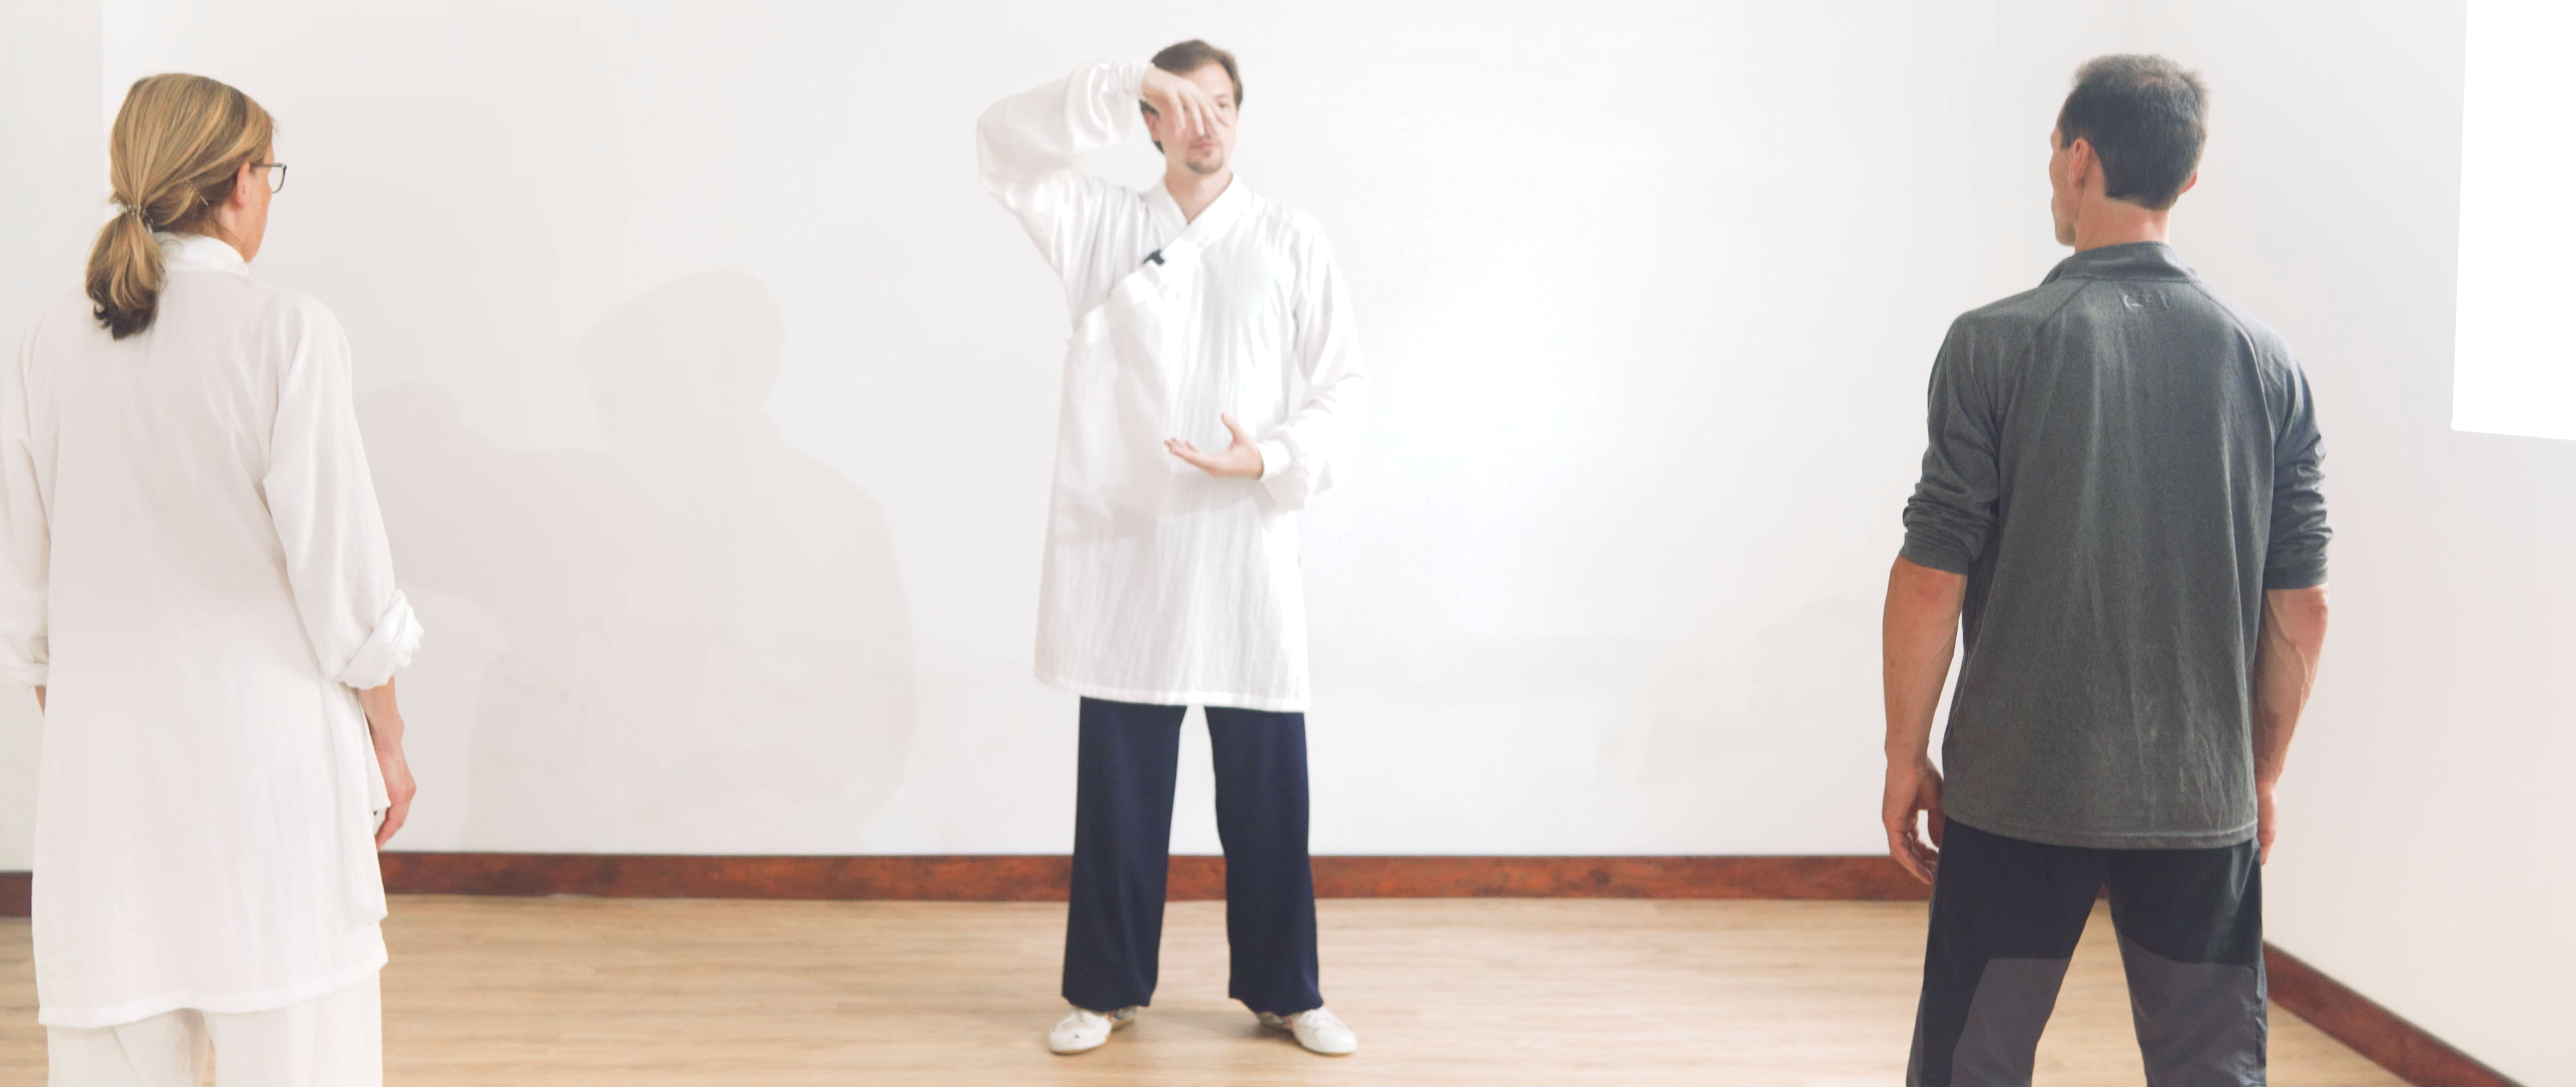 Using Ba Duan Jin to Stretch the Spine Correctly